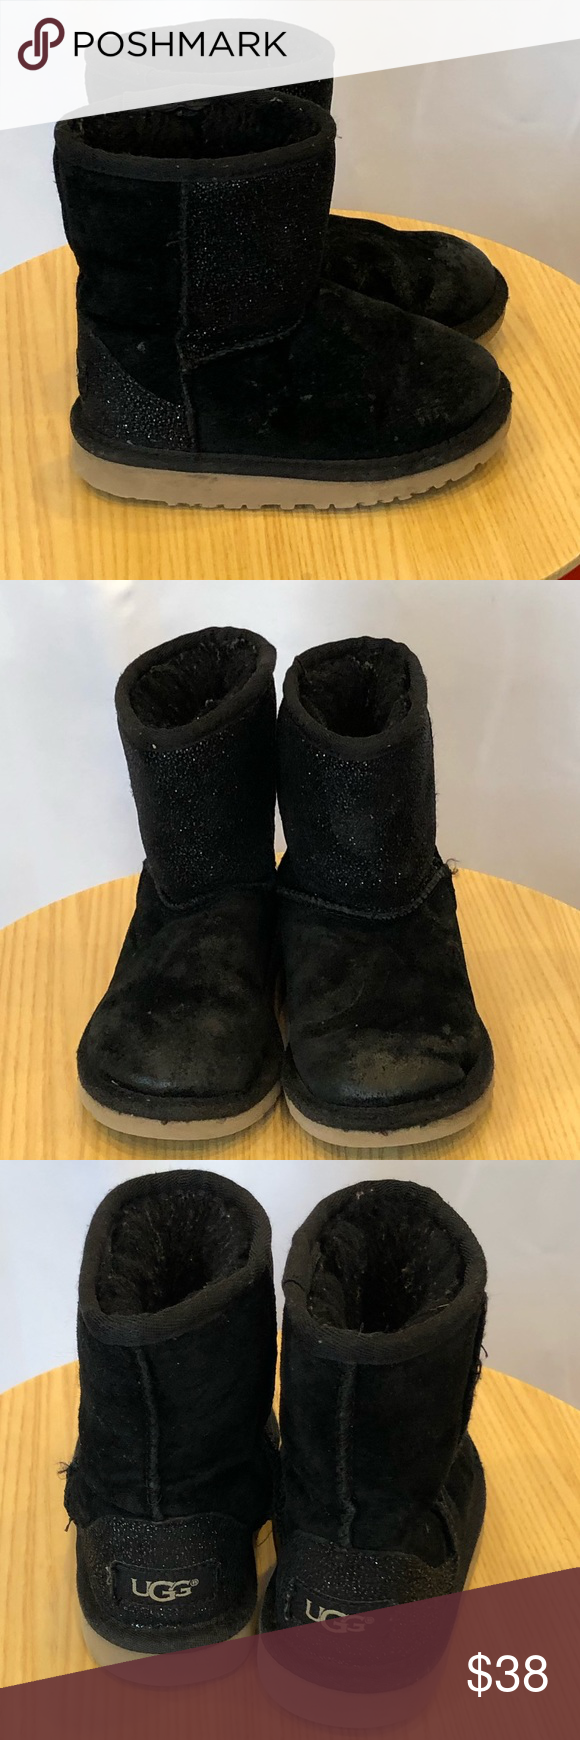 Ugg black boots for girls with sparkles size 9 Ugg black boots for girls with sparkles size 9 in very good preowned condition ♥️ UGG Shoes Boots #uggbootsoutfitblackgirl Ugg black boots for girls with sparkles size 9 Ugg black boots for girls with sparkles size 9 in very good preowned condition ♥️ UGG Shoes Boots #uggbootsoutfitblackgirl